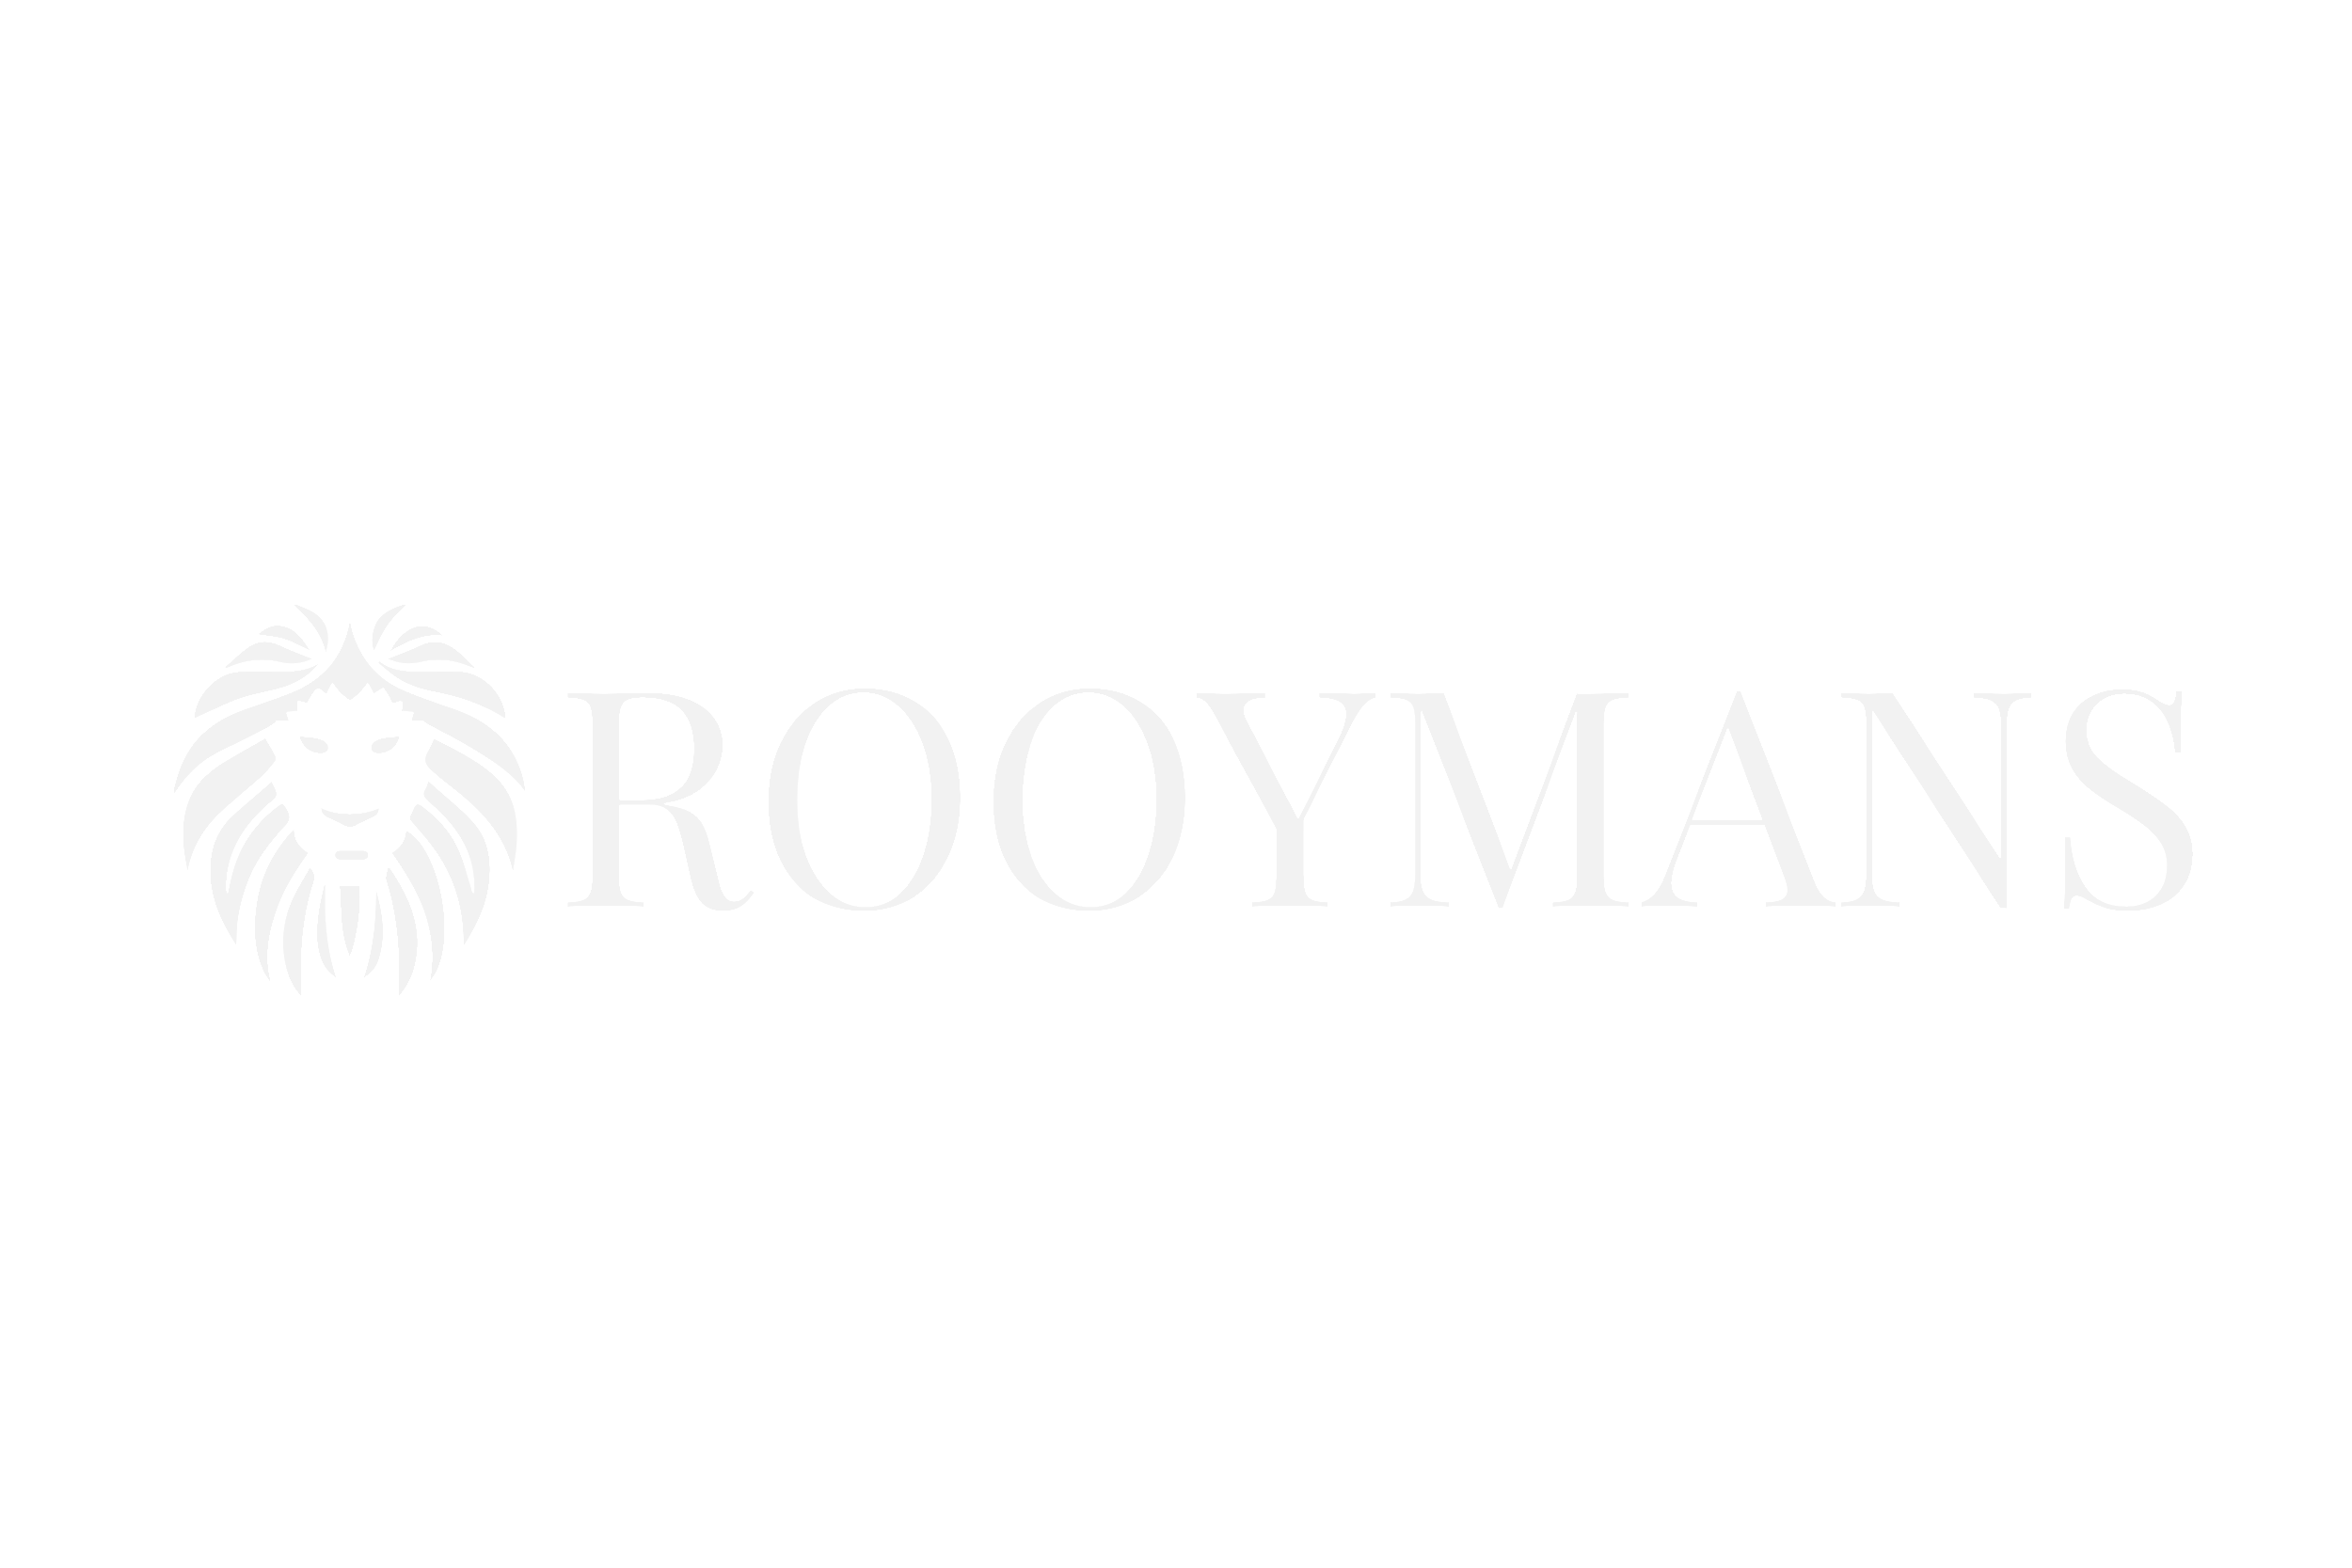 rooymanspng.png